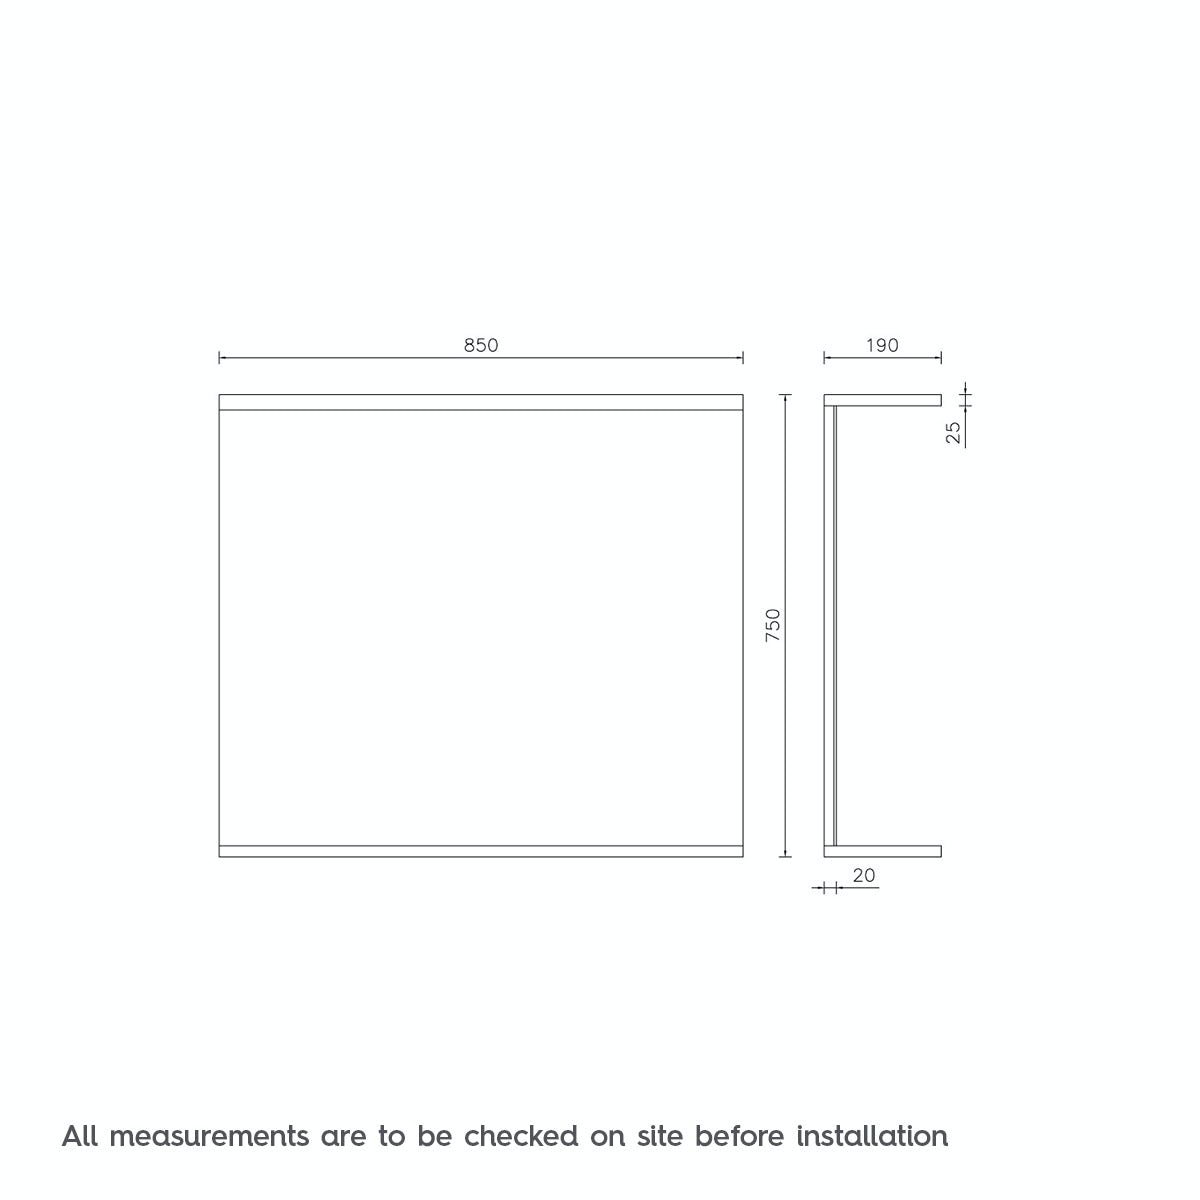 Dimensions for Orchard Florence white bathroom mirror 850mm